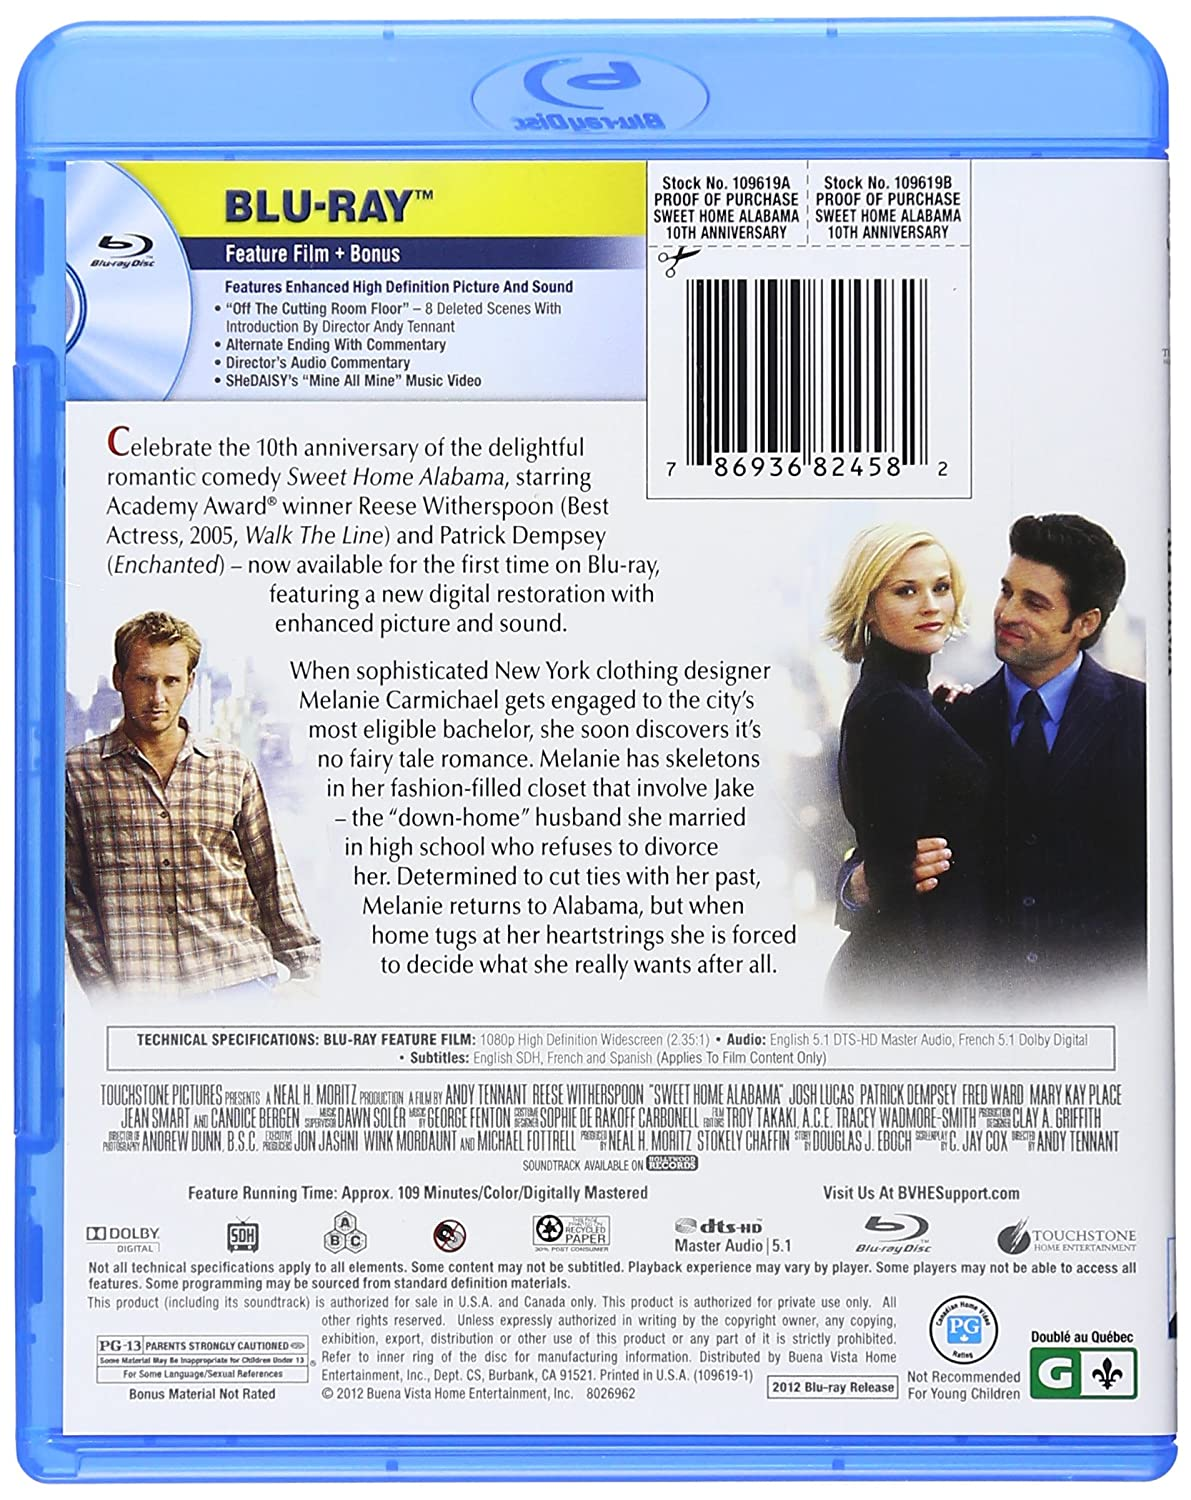 Amazon Com Sweet Home Alabama 10th Anniversary Edition Blu Ray Reese Witherspoon Josh Lucas Patrick Dempsey Candice Bergen Mary Kay Place Fred Ward Jean Smart Ethan Embry Melanie Lynskey Courtney Gains Mary Lynn Rajskub